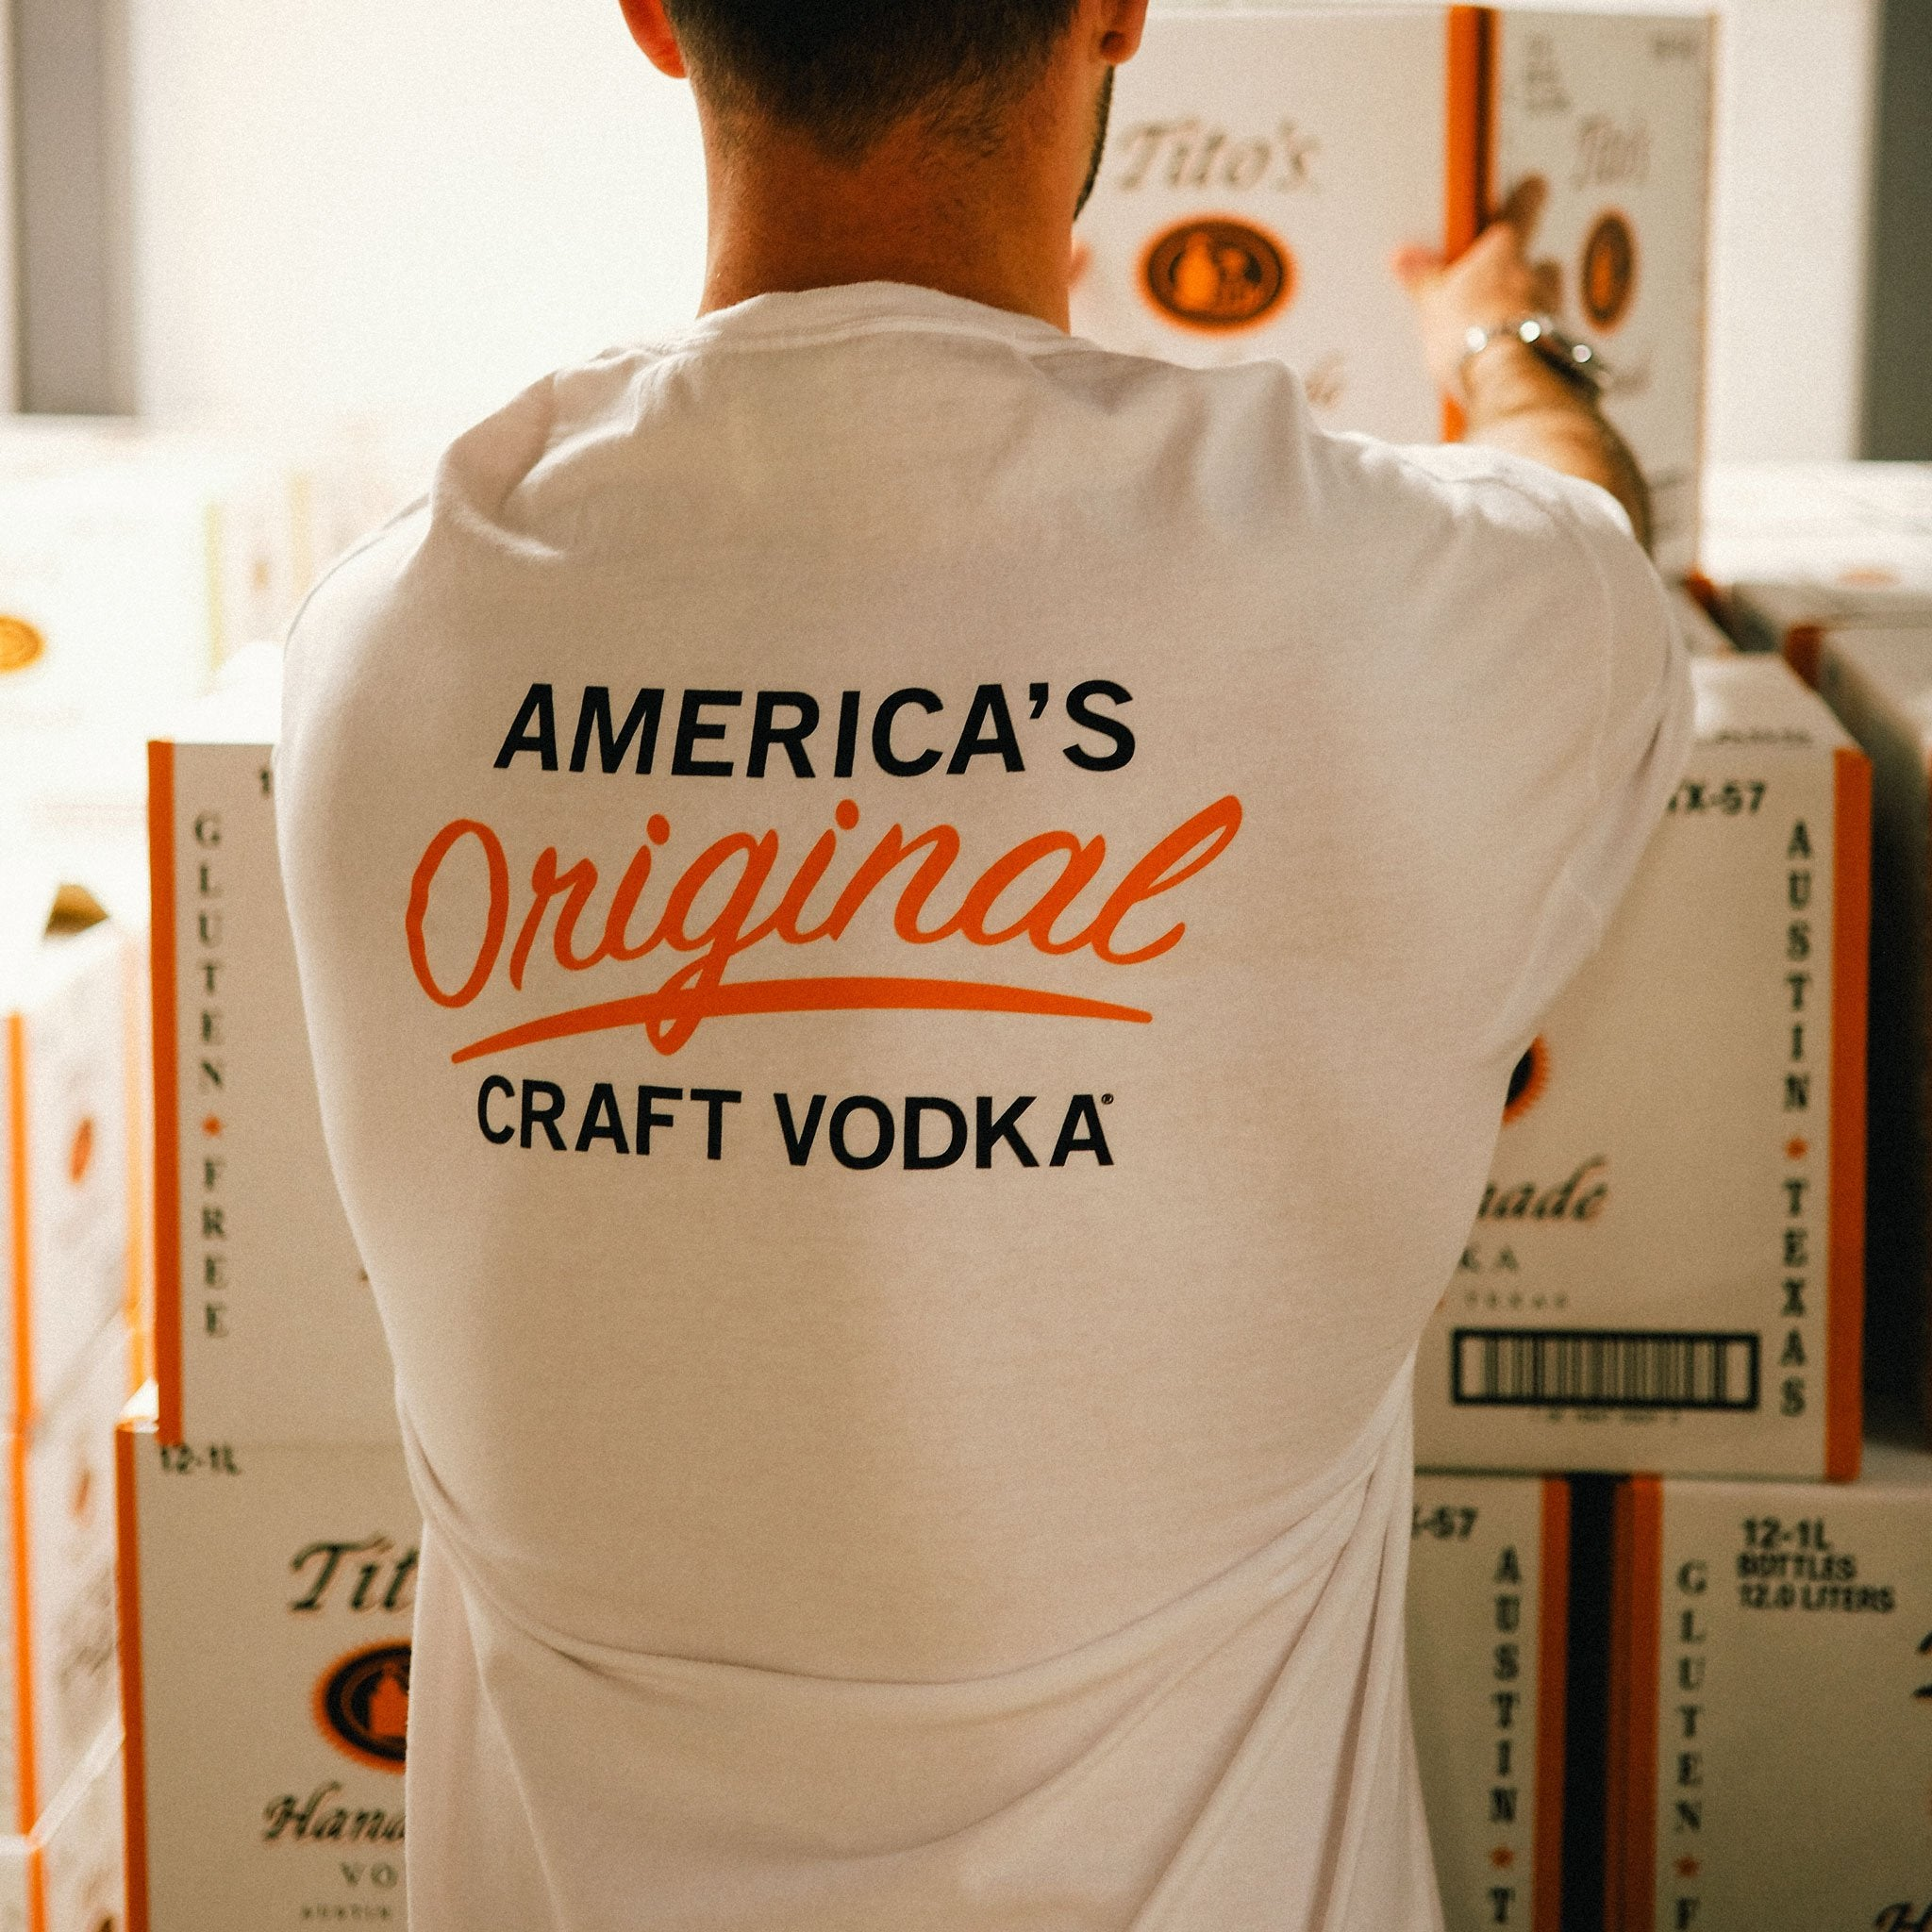 Back of person wearing short-sleeve white t-shirt with America's Original Craft Vodka mark